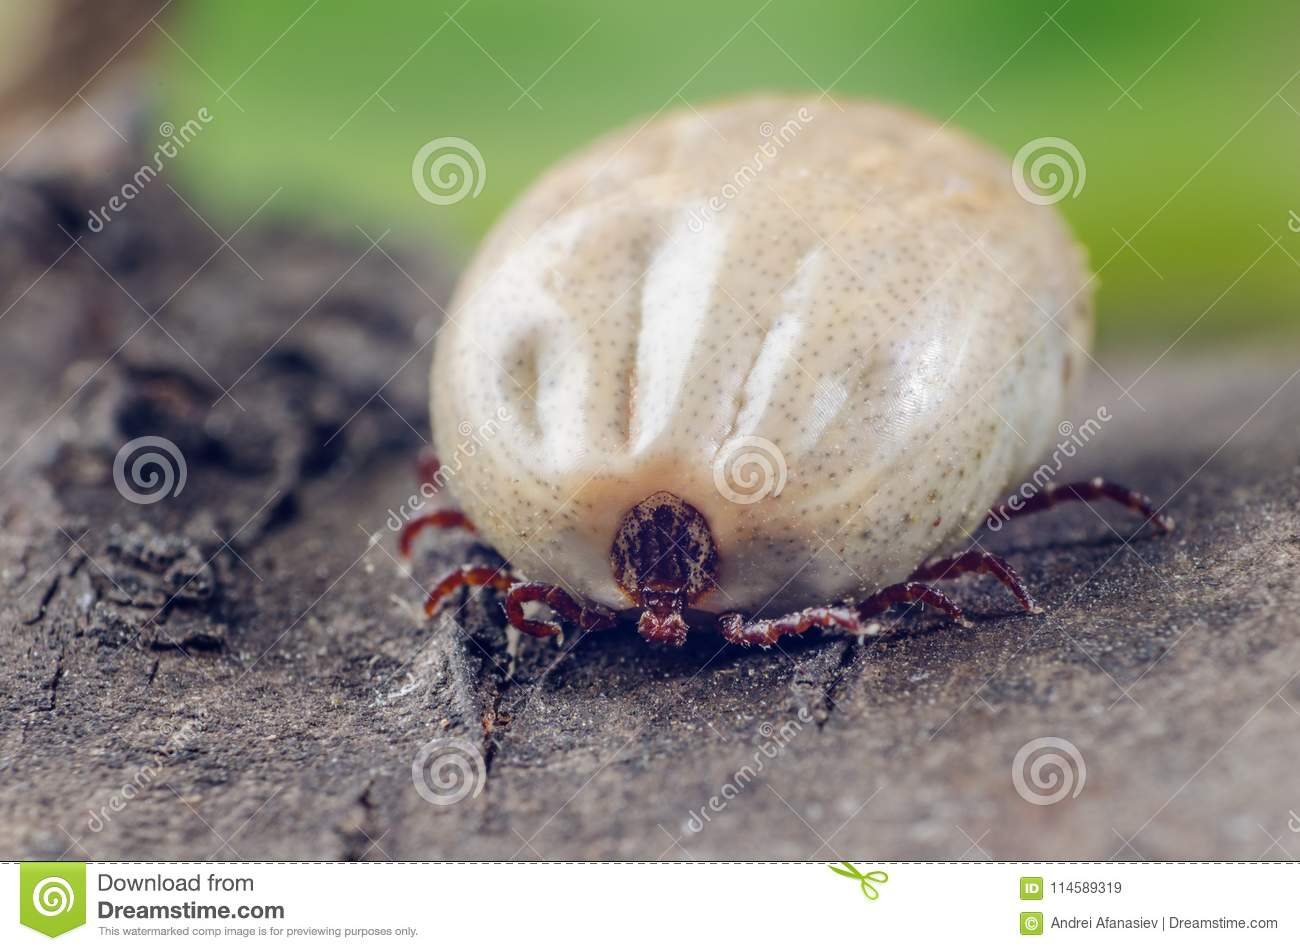 A dangerous parasite and a carrier of infection, a tick full of blood sitting on the bark of a tree